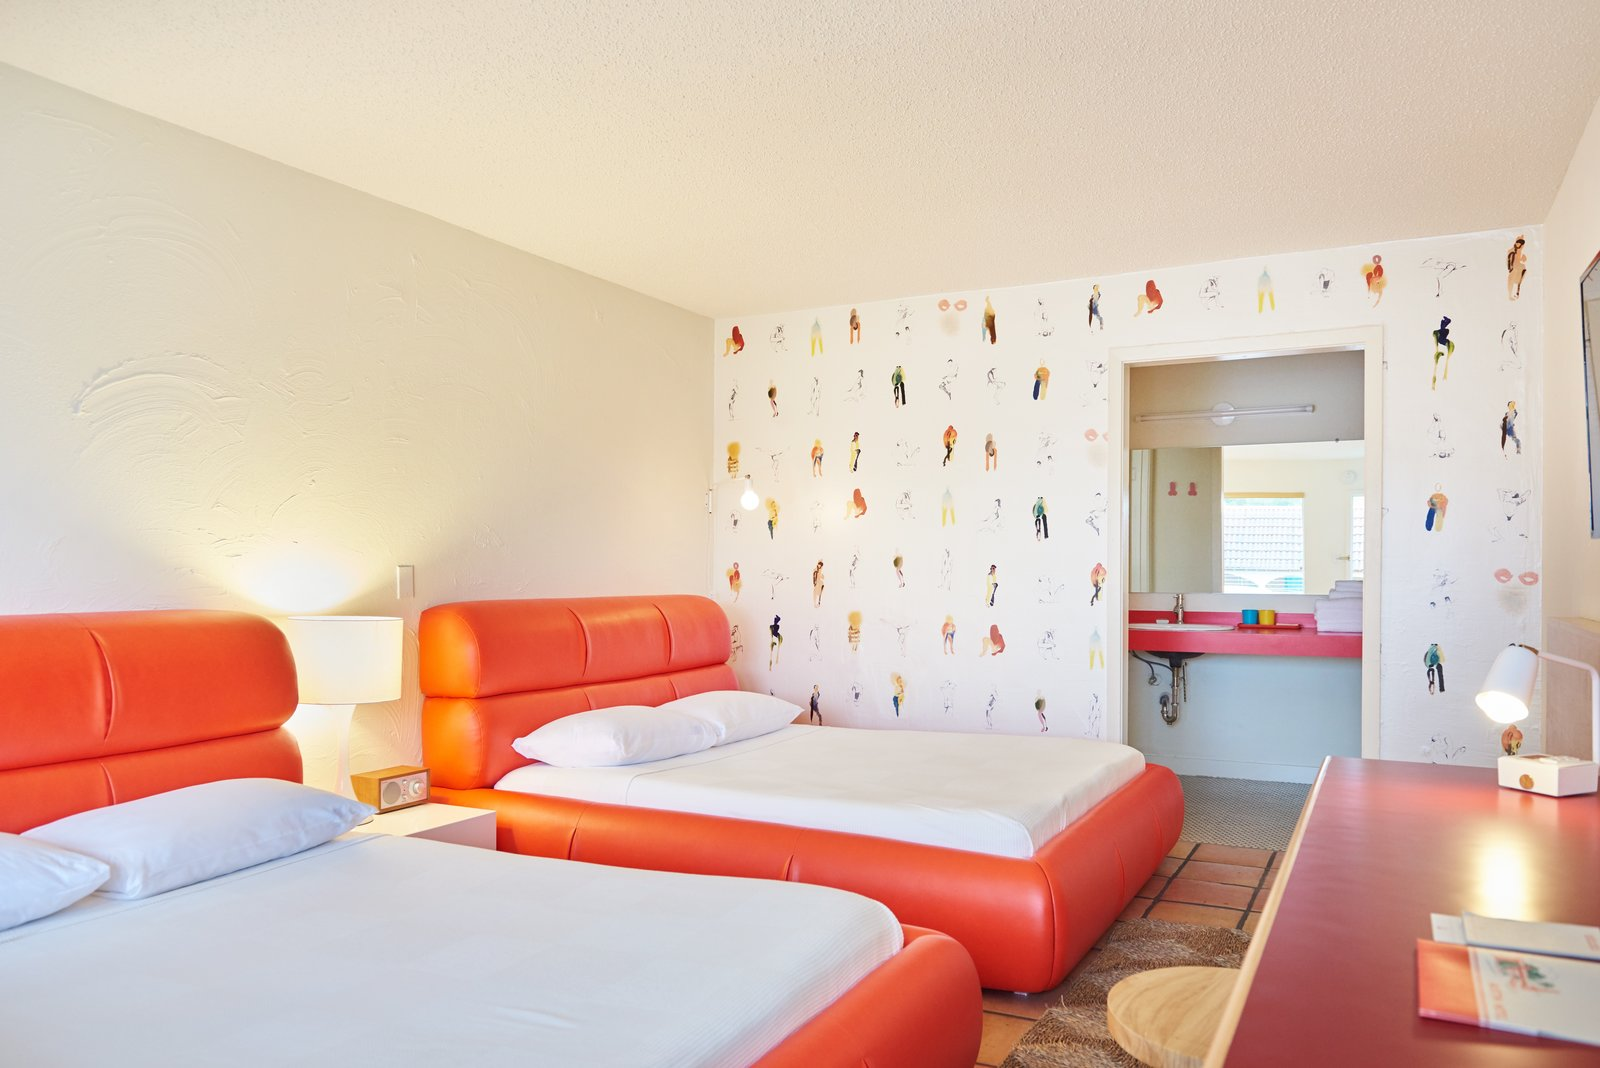 Tagged: Bedroom, Bed, Table Lighting, and Terra-cotta Tile Floor. The Rejuvenated Austin Motel Welcomes Guests With Upbeat, Midcentury-Modern Vibes - Photo 5 of 13